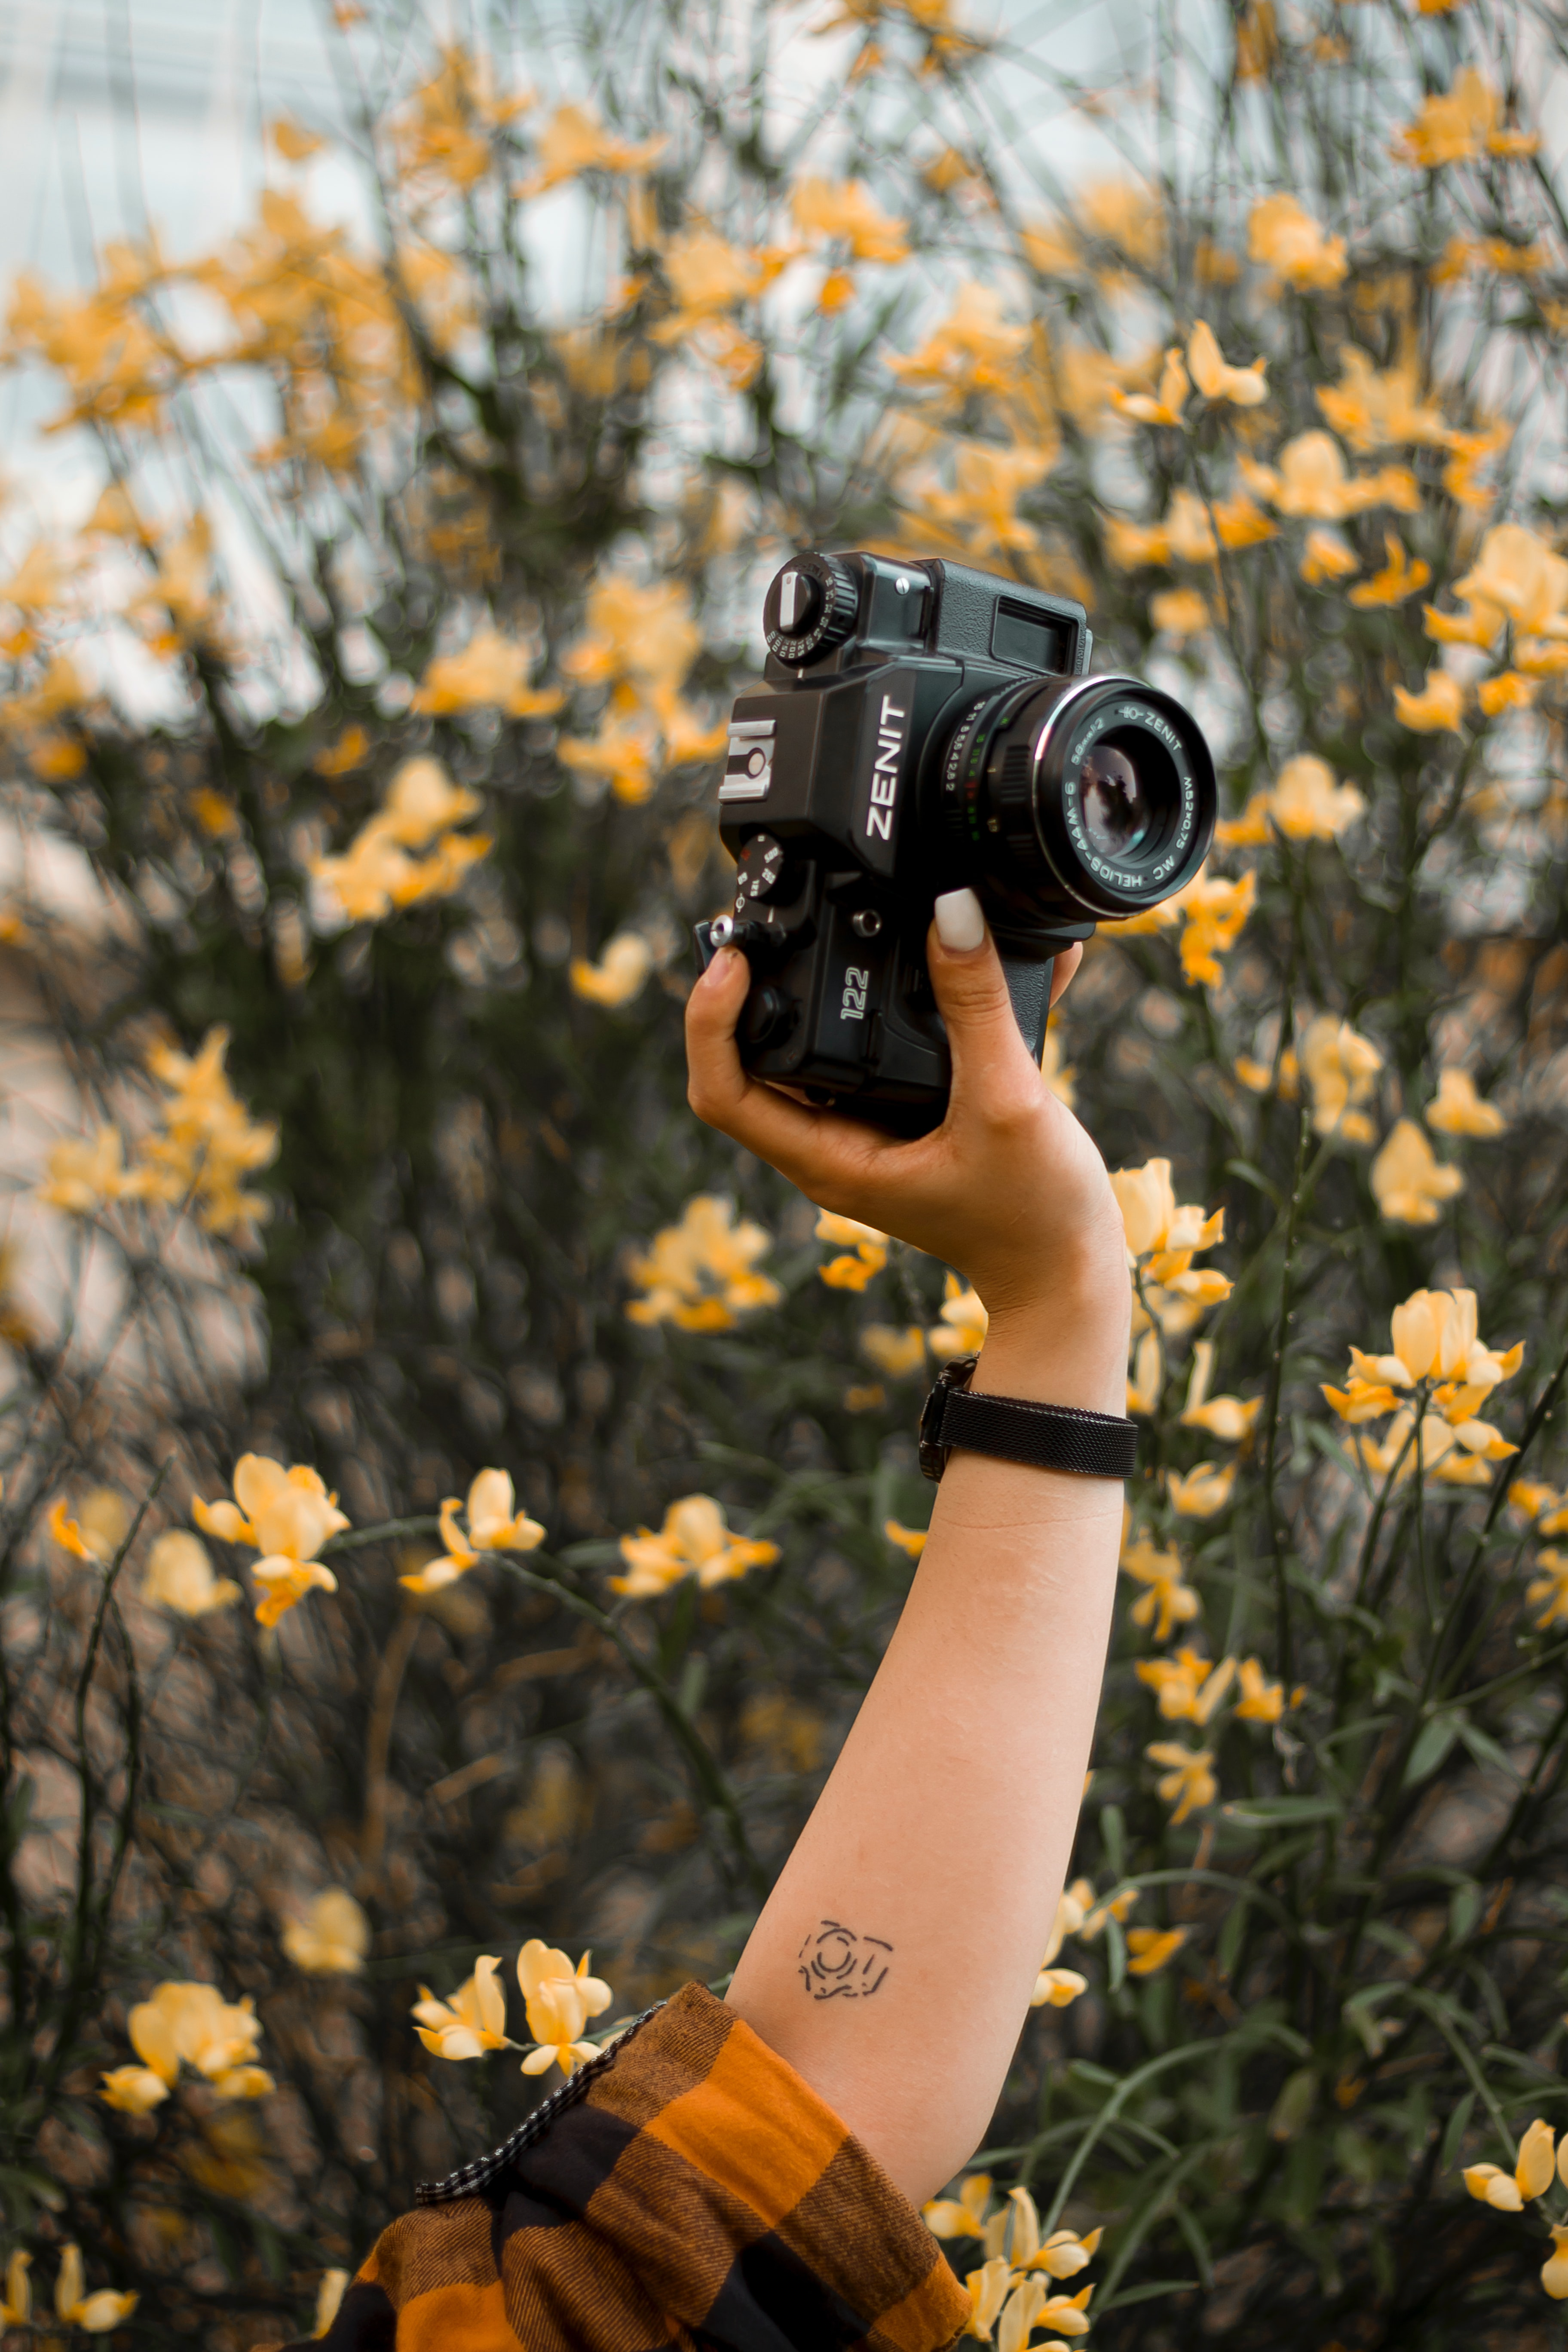 77469 download wallpaper Flowers, Hand, Miscellanea, Miscellaneous, Tattoo, Retro, Camera screensavers and pictures for free